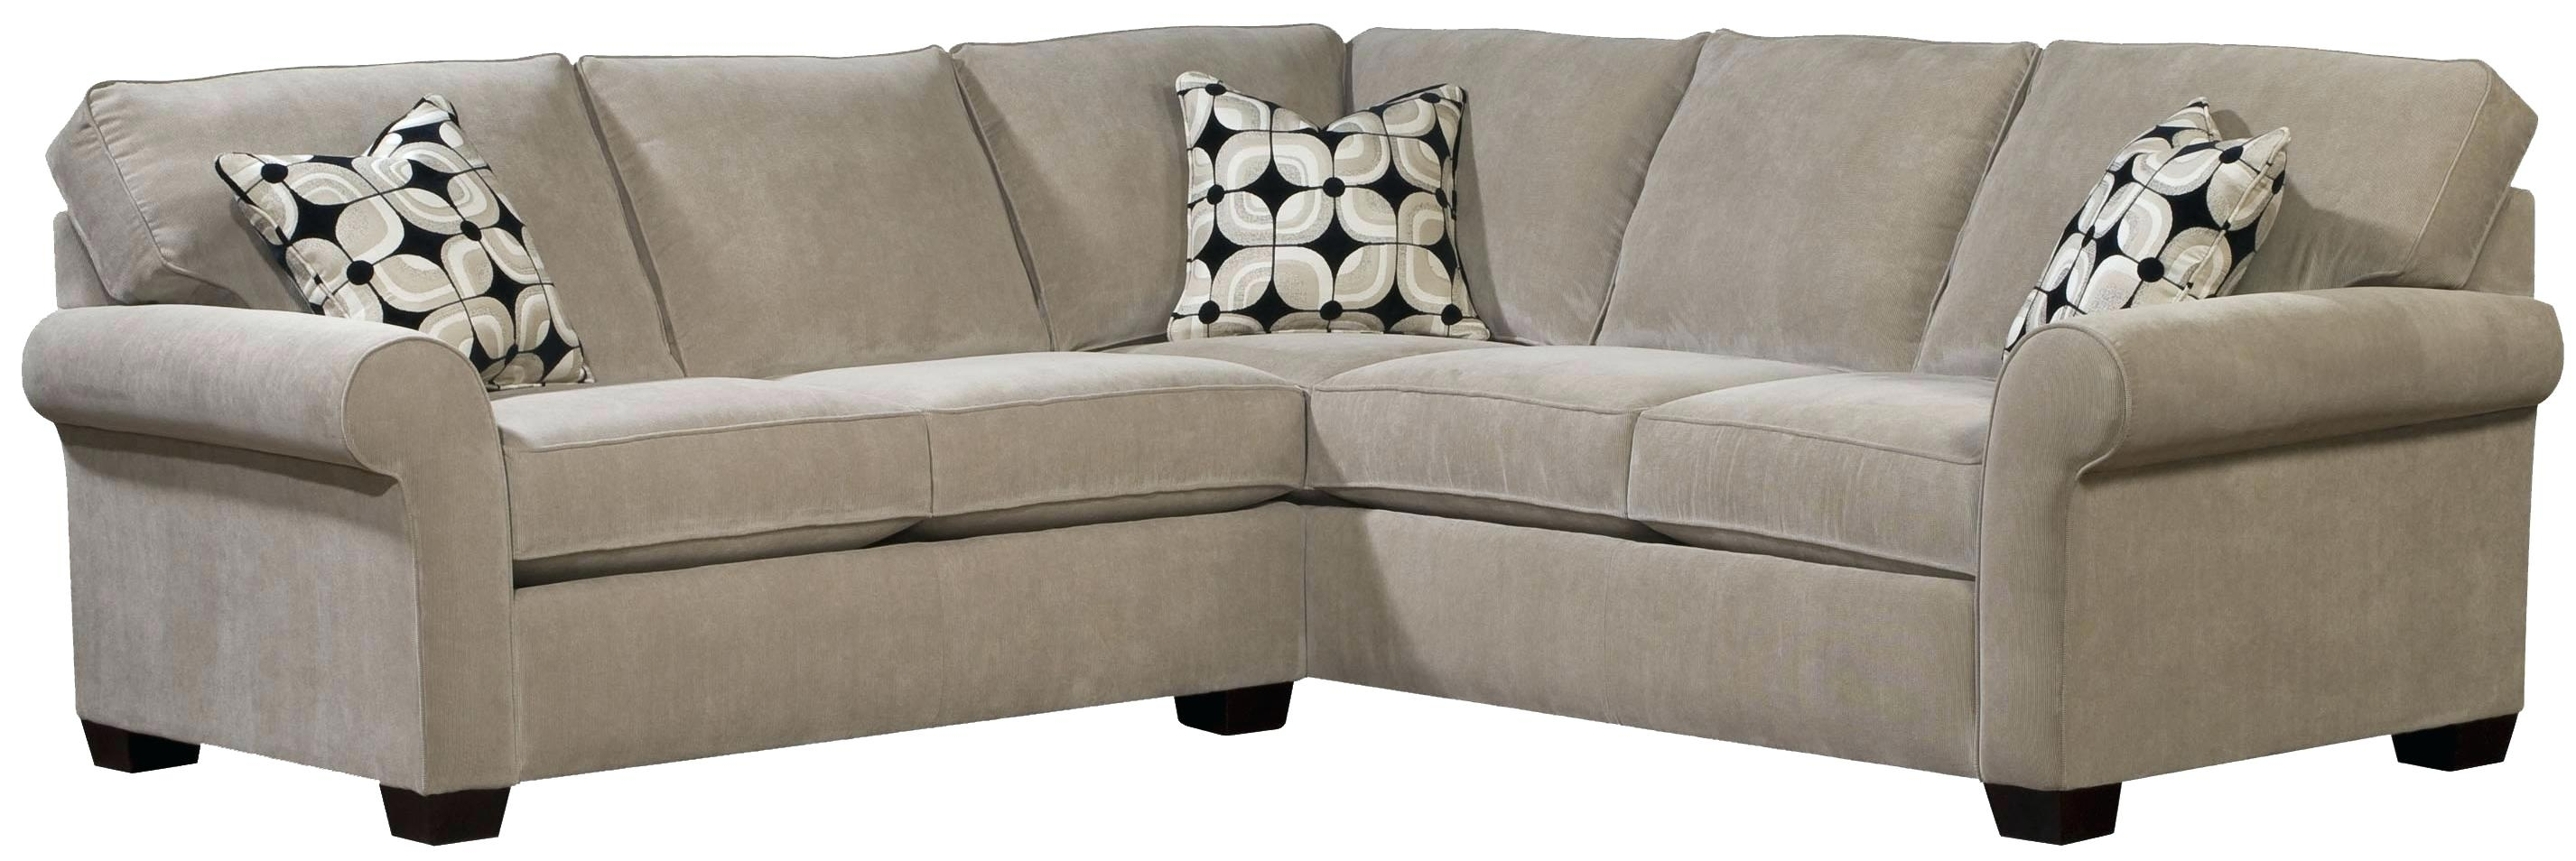 Featured Photo of Sam Levitz Sectional Sofas